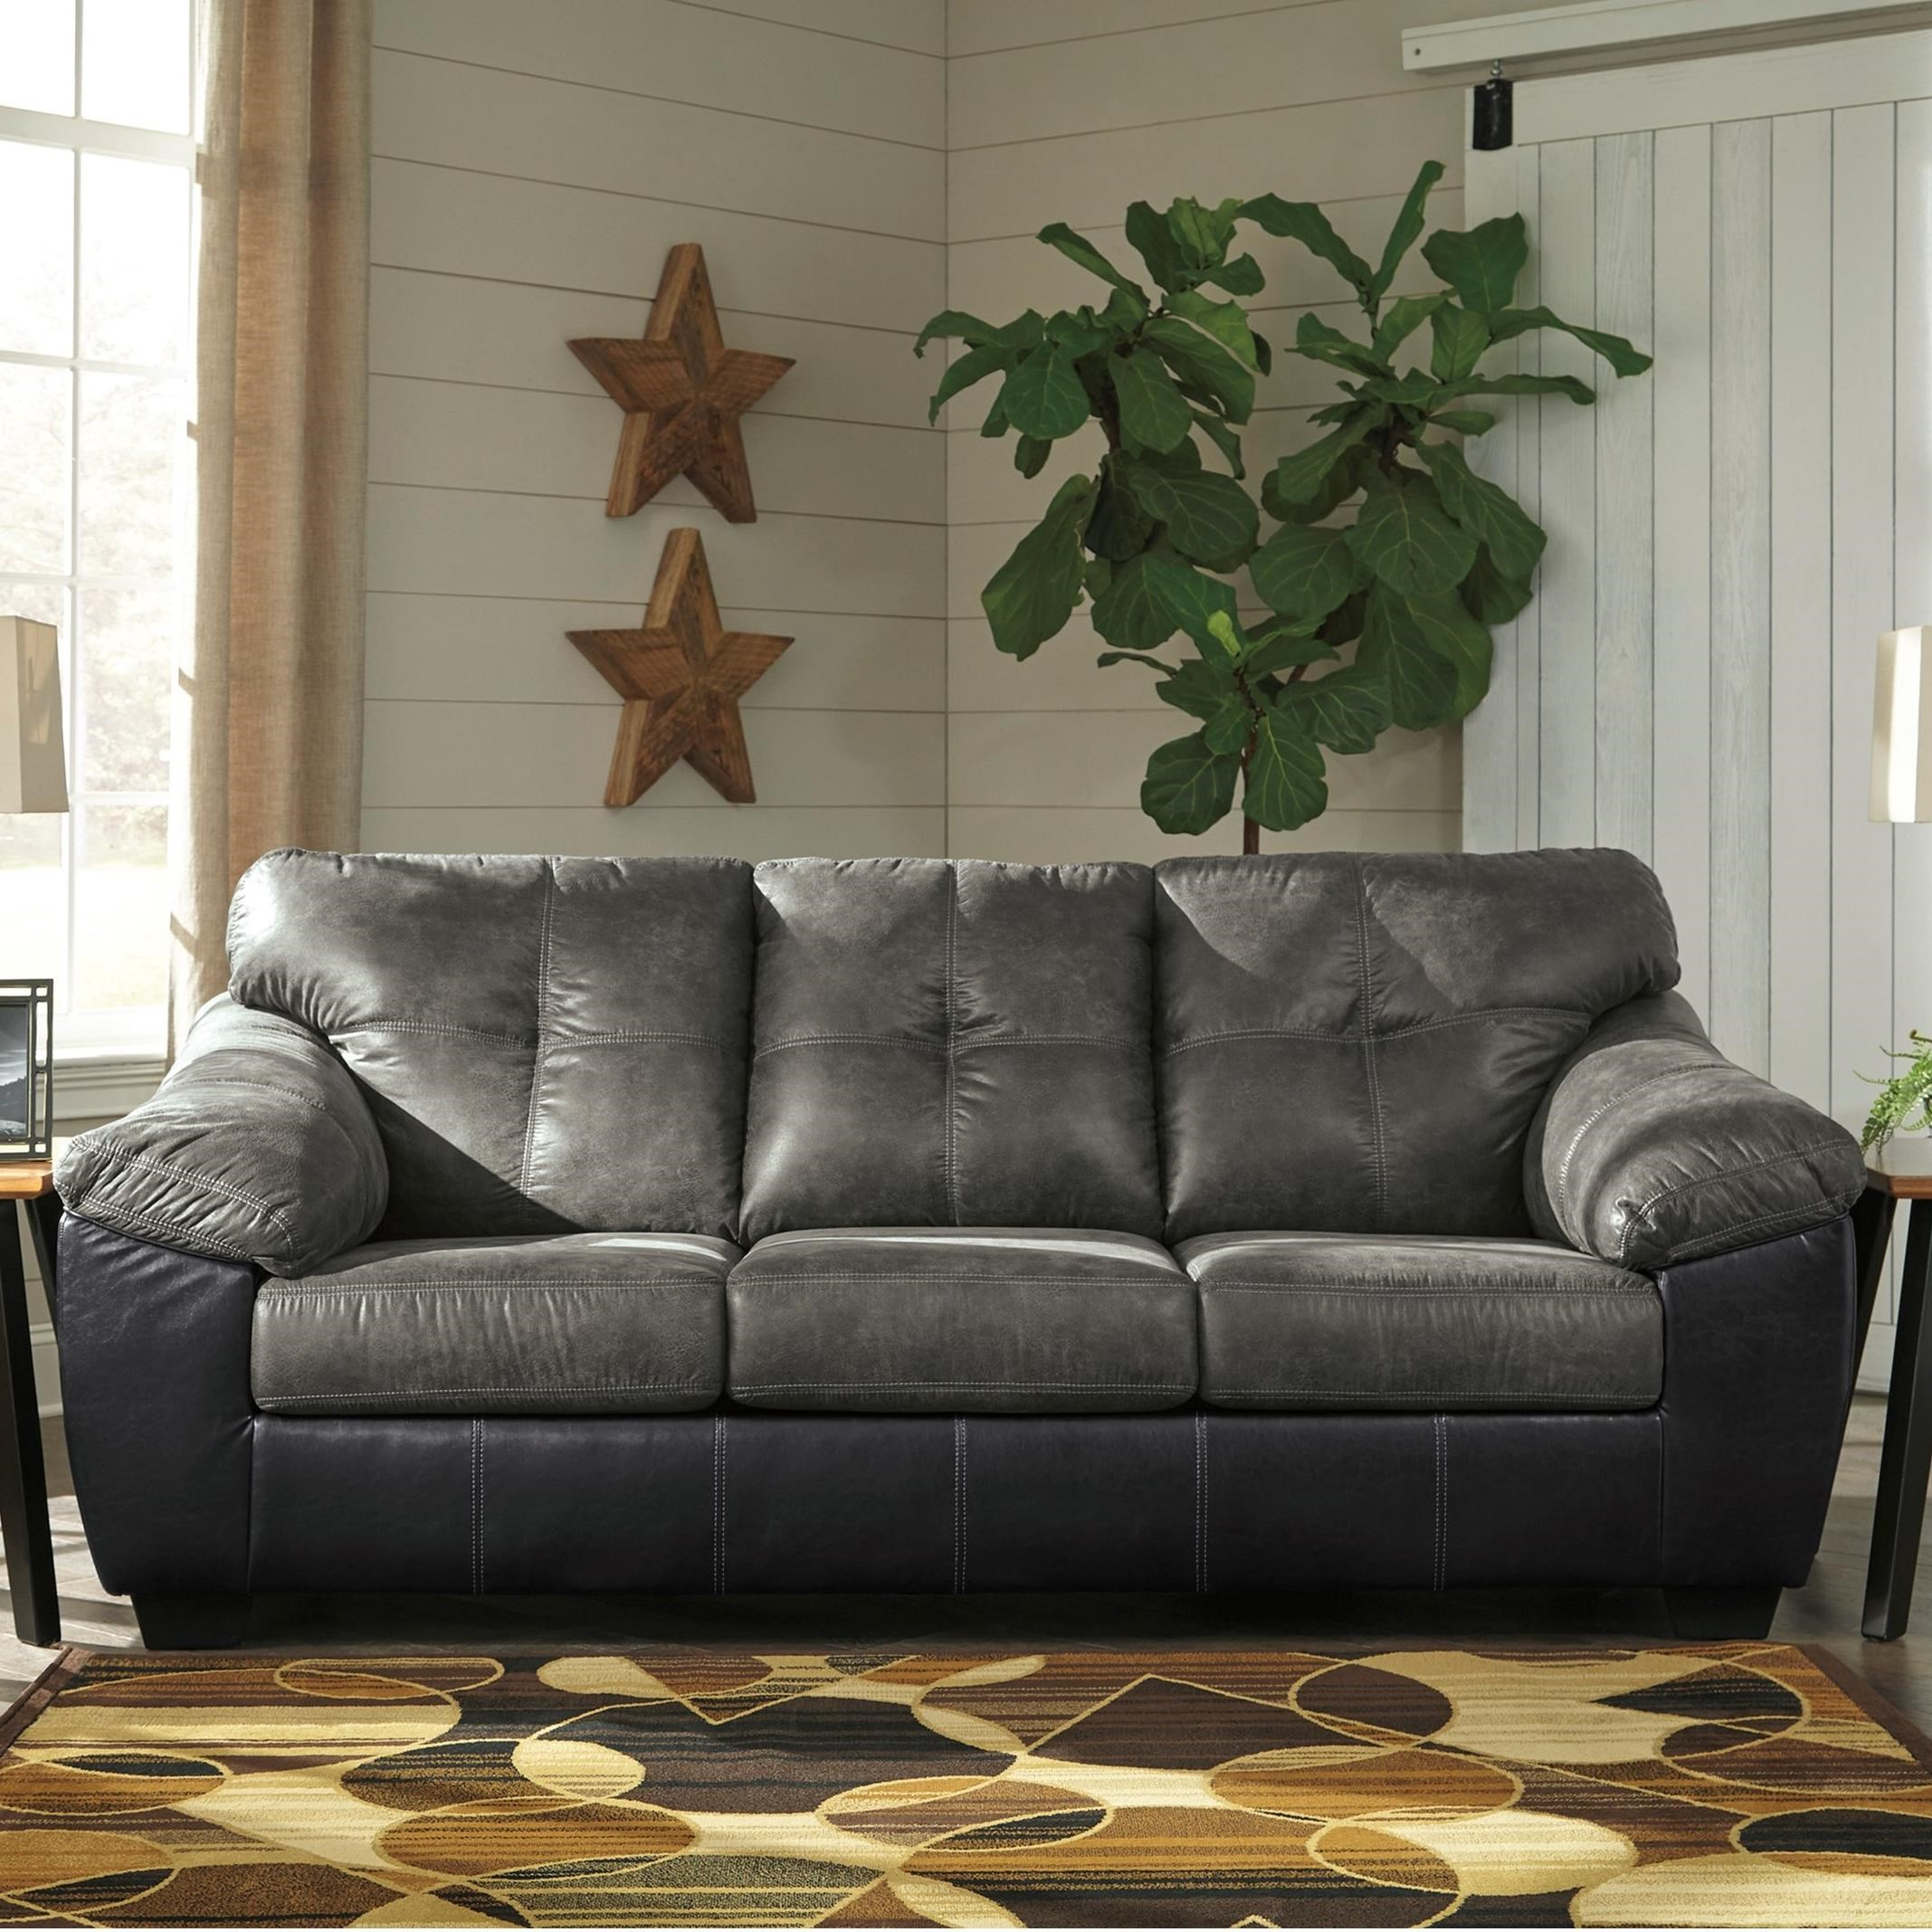 Sofa Queen Gregale Two Tone Faux Leather Queen Sofa Sleeper With Memory Foam Mattress By Signature Design By Ashley At Prime Brothers Furniture